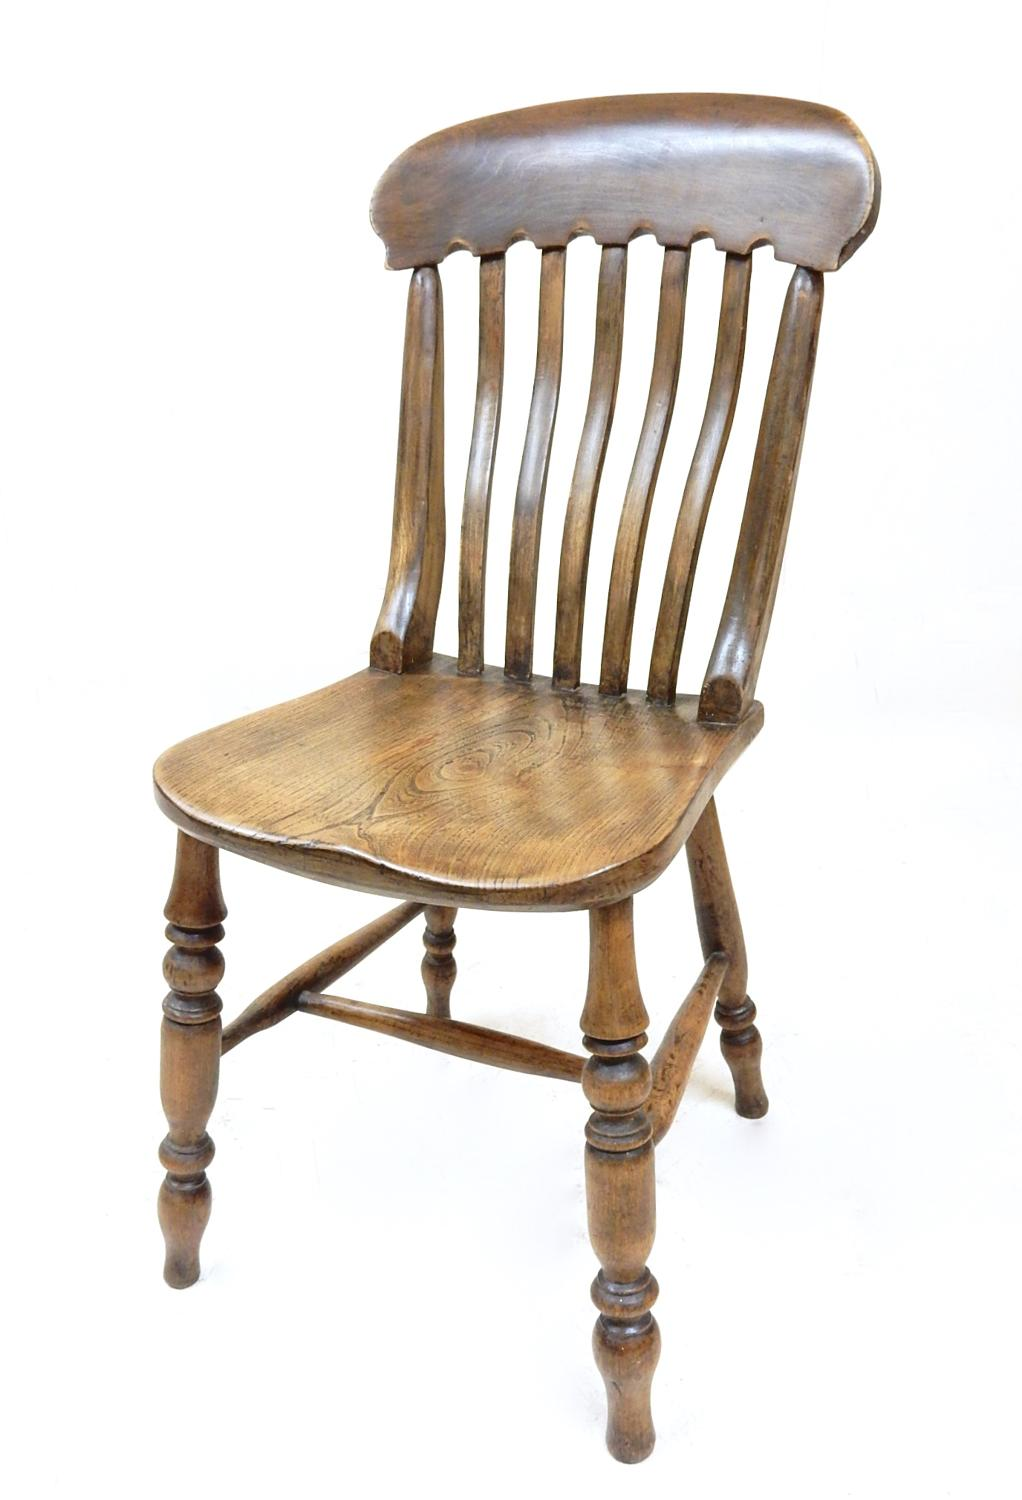 Antique Windsor Kitchen Chairs In Tables And Chairs